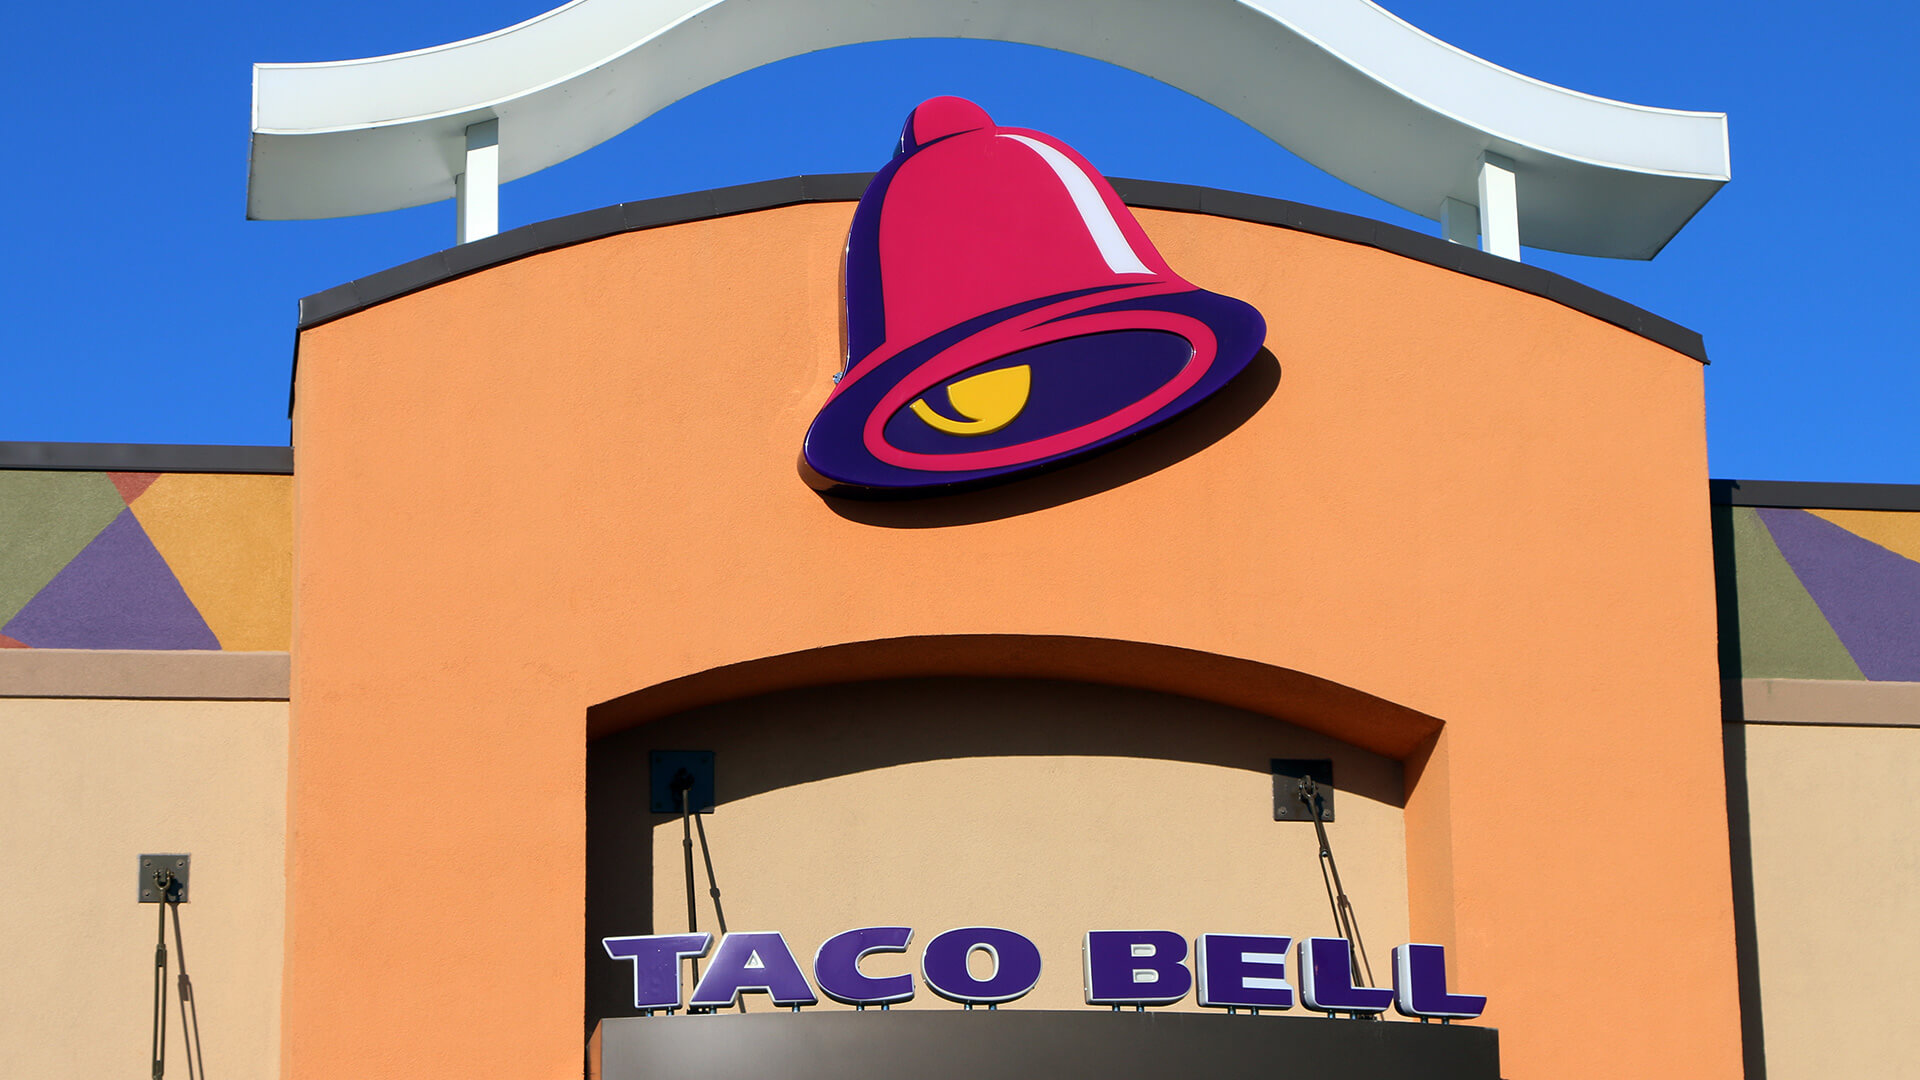 kfc,-taco-bell-tap-ai,-and-gaar-is-explained:-monday's-daily-brief